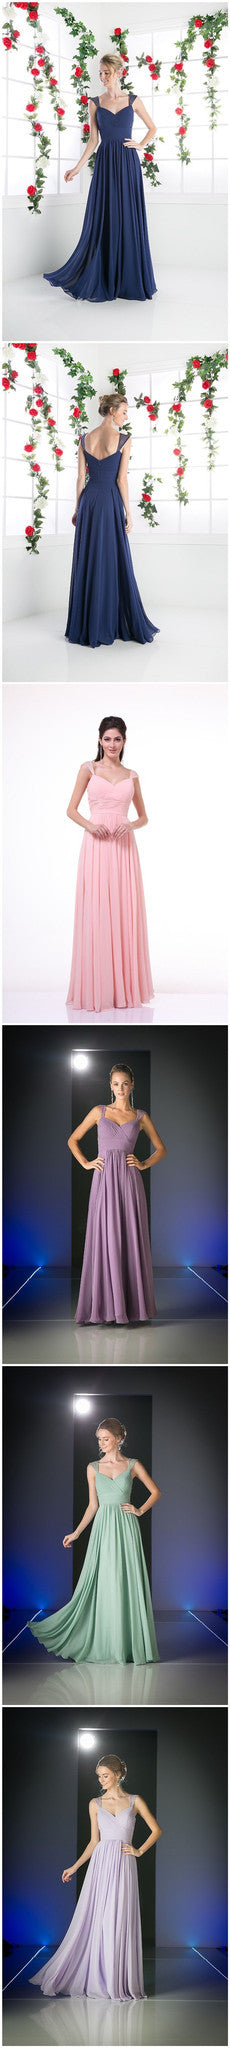 2017 Simple Chiffon Cheap A-line Cocktail Evening Party Cocktail Prom Dress.PD0156